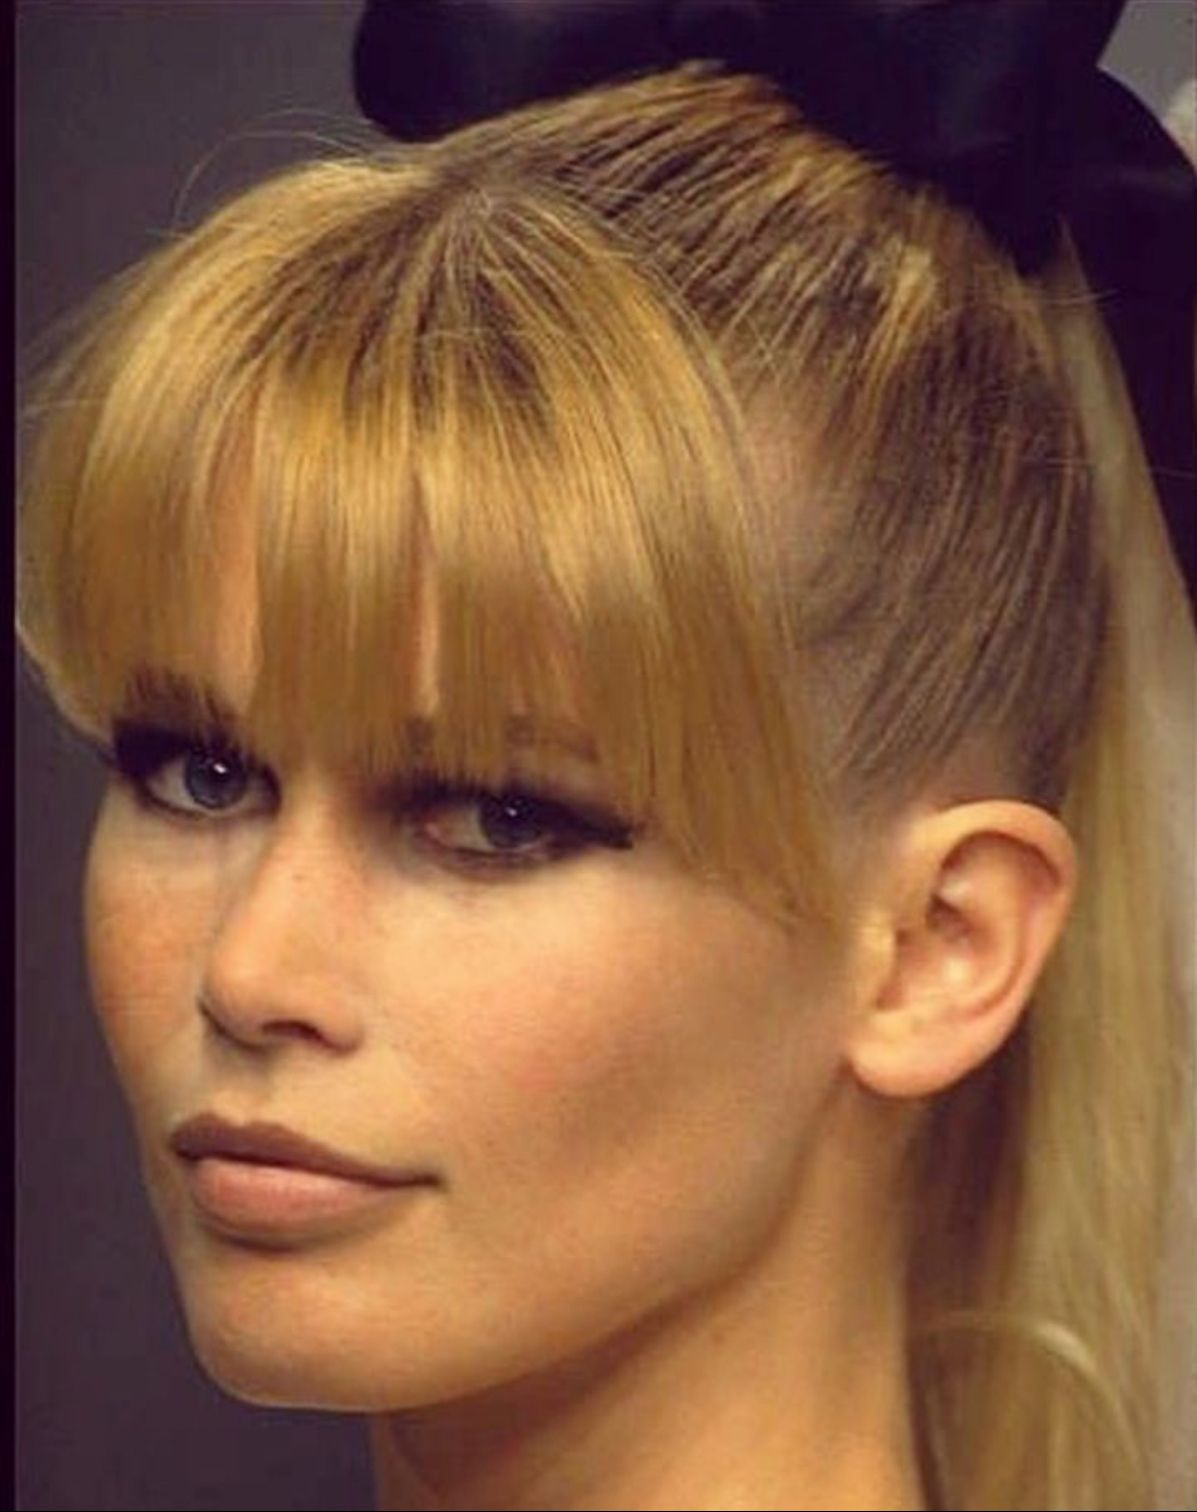 Pin By Moj Profil On Claudia Schiffer Hair Muse Claudia Schiffer Blonde Actresses